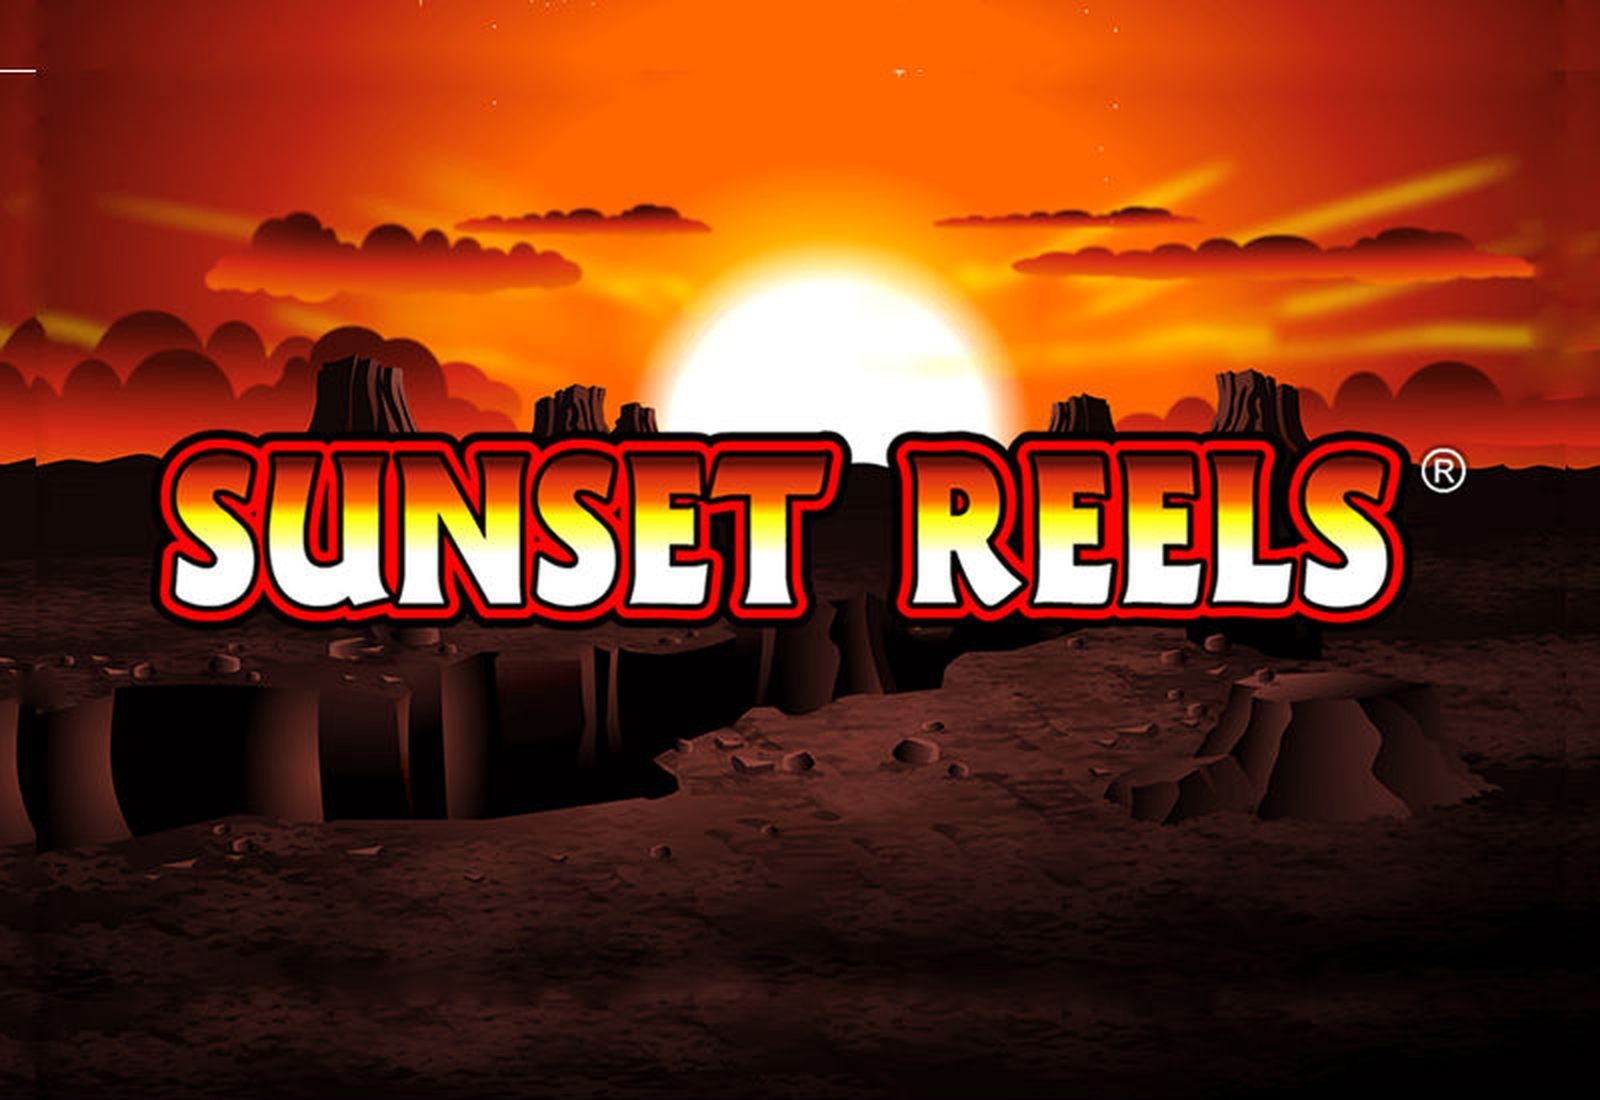 Reels in Sunset Reels Slot Game by Realistic Games